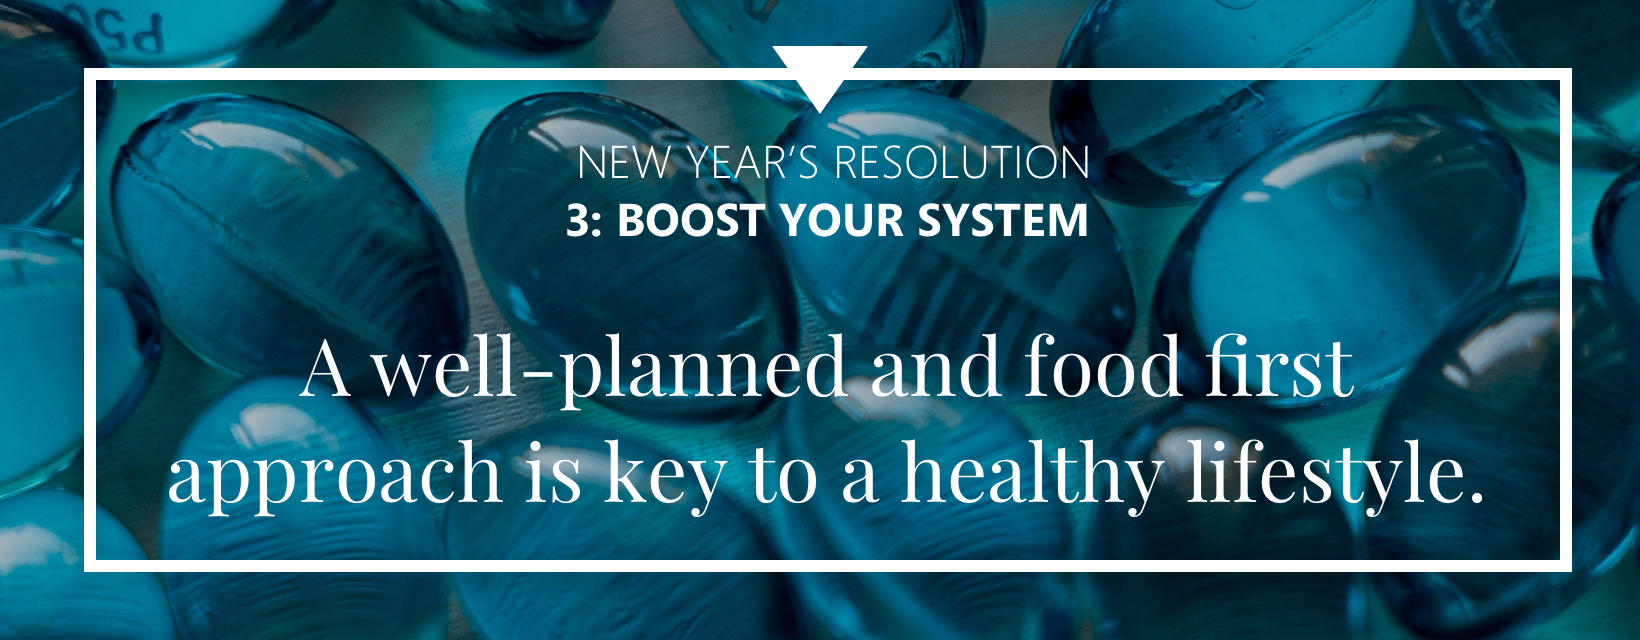 New Year's resolutions for dancers N3: Boost Your System